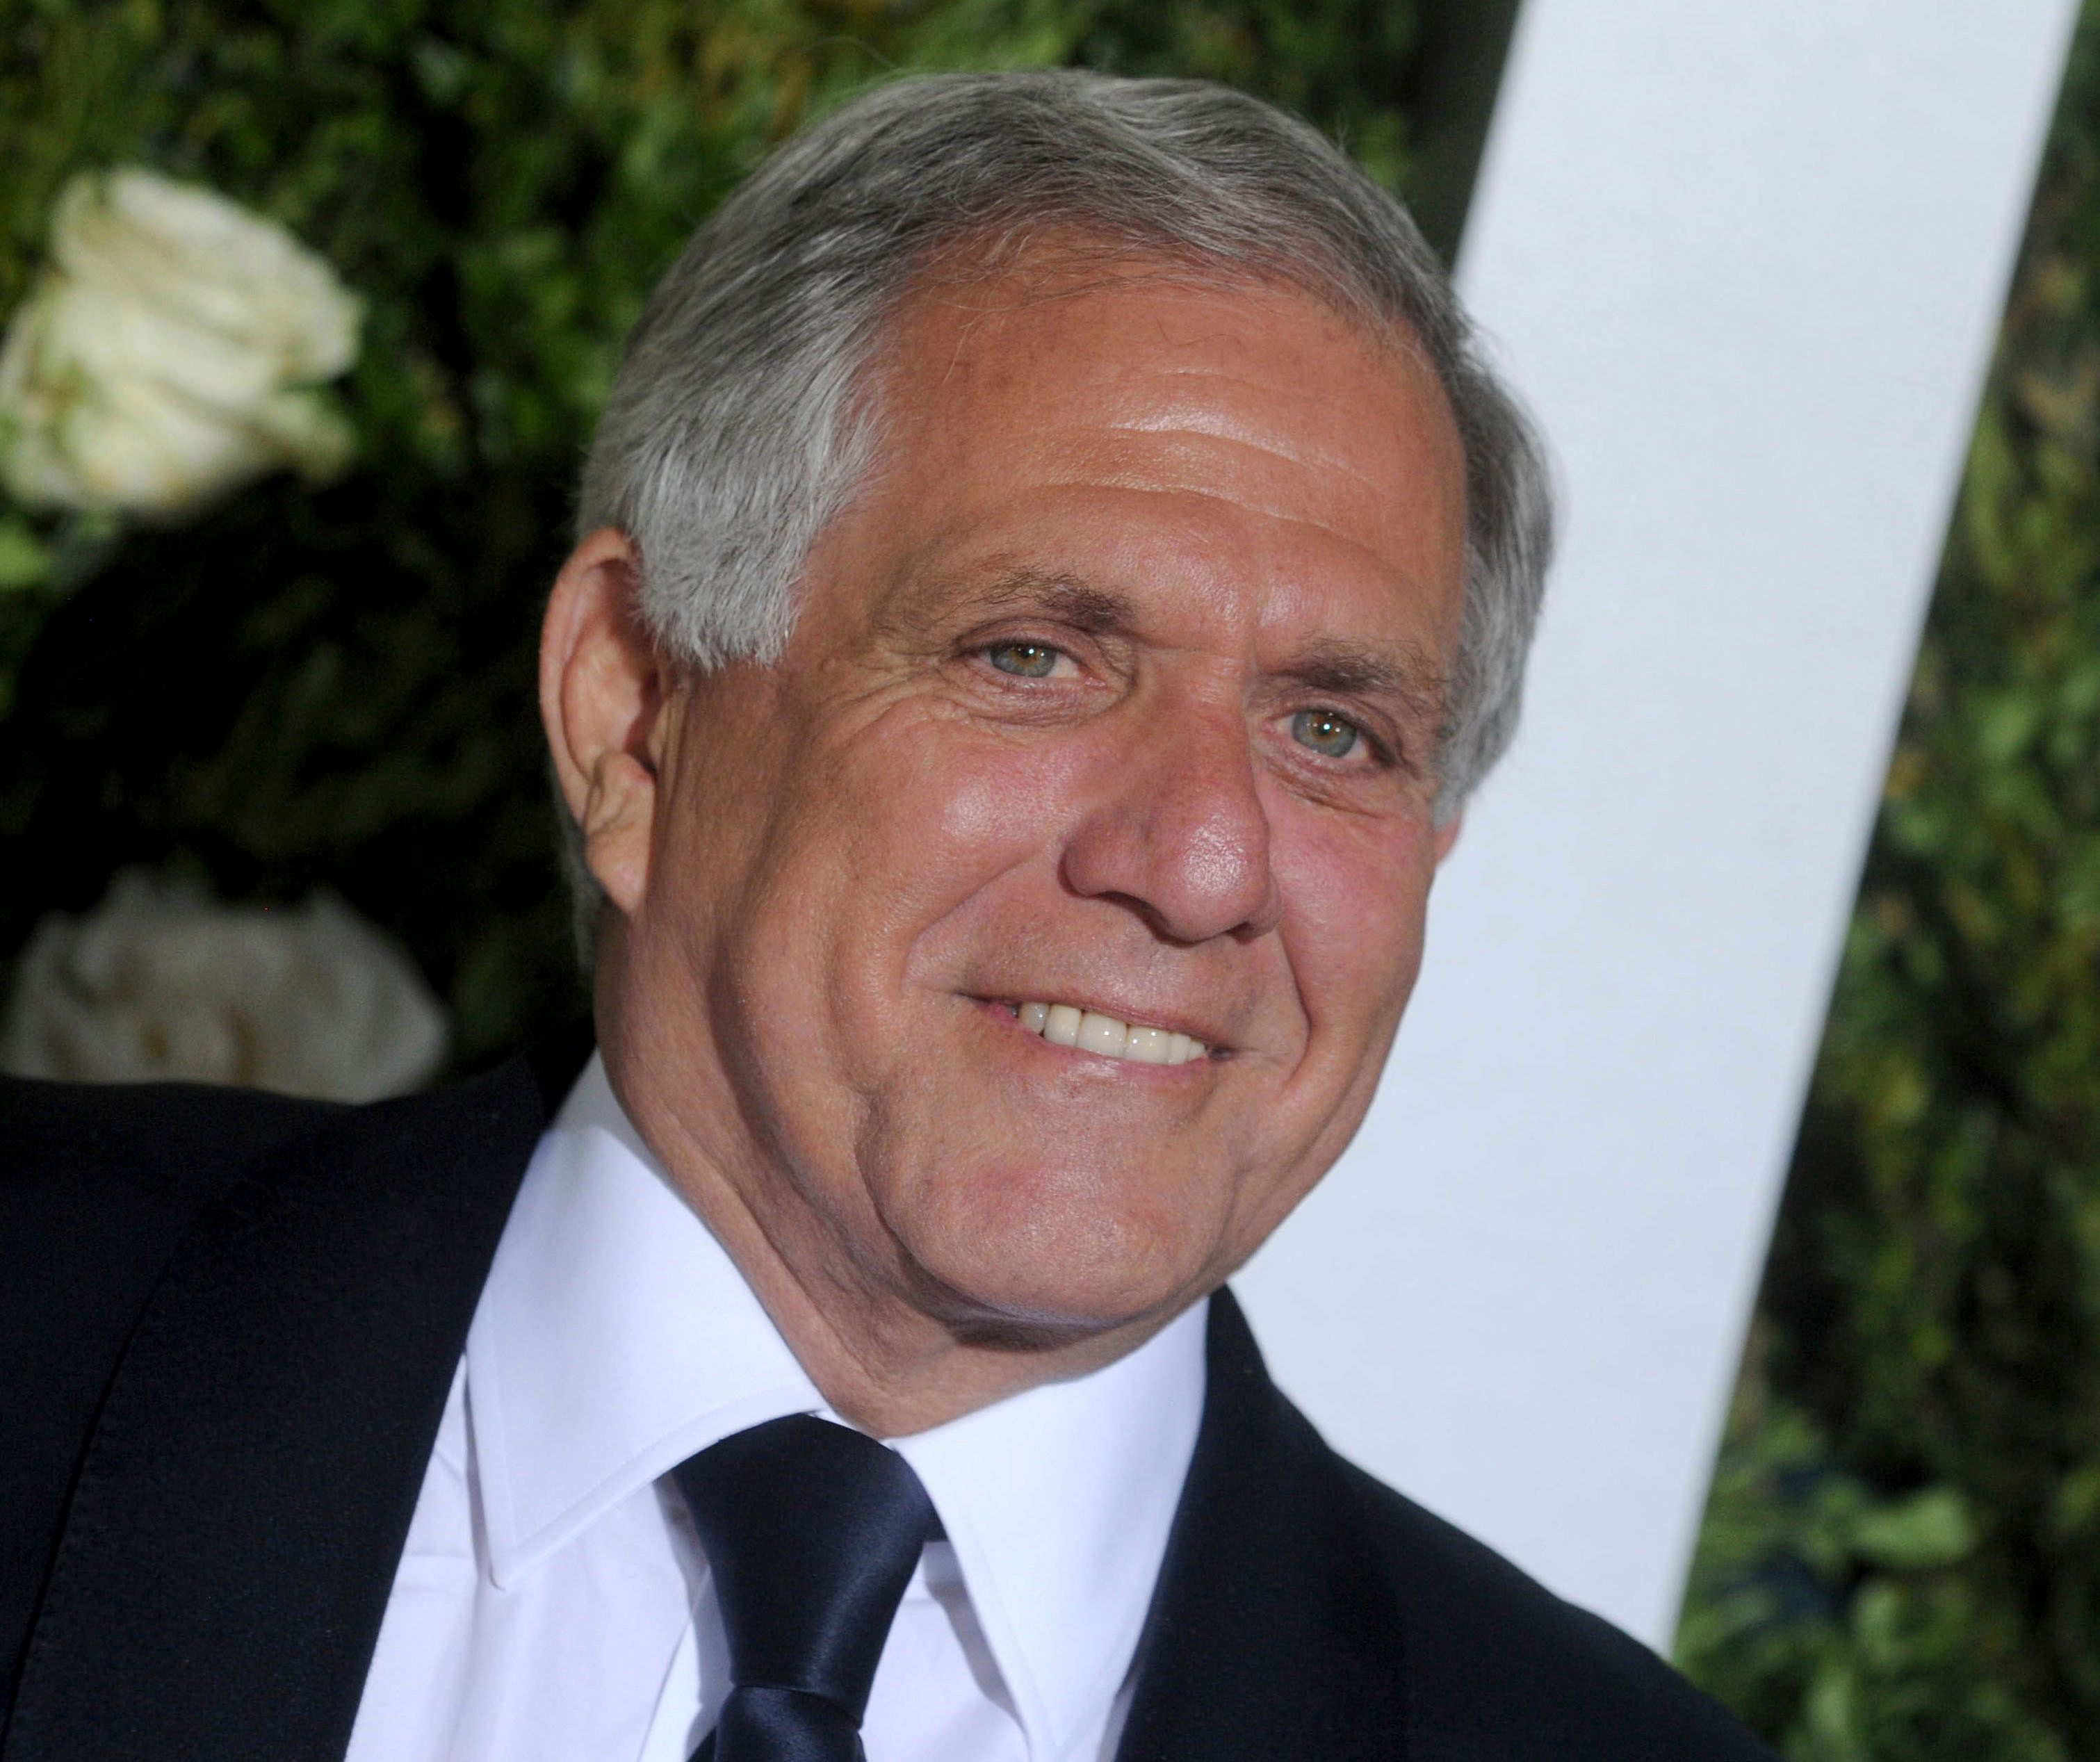 File Photo by: Dennis Van Tine/STAR MAX/IPx 2017 6/11/17 Les Moonves at The 71st Annual Tony Awards in New York City.